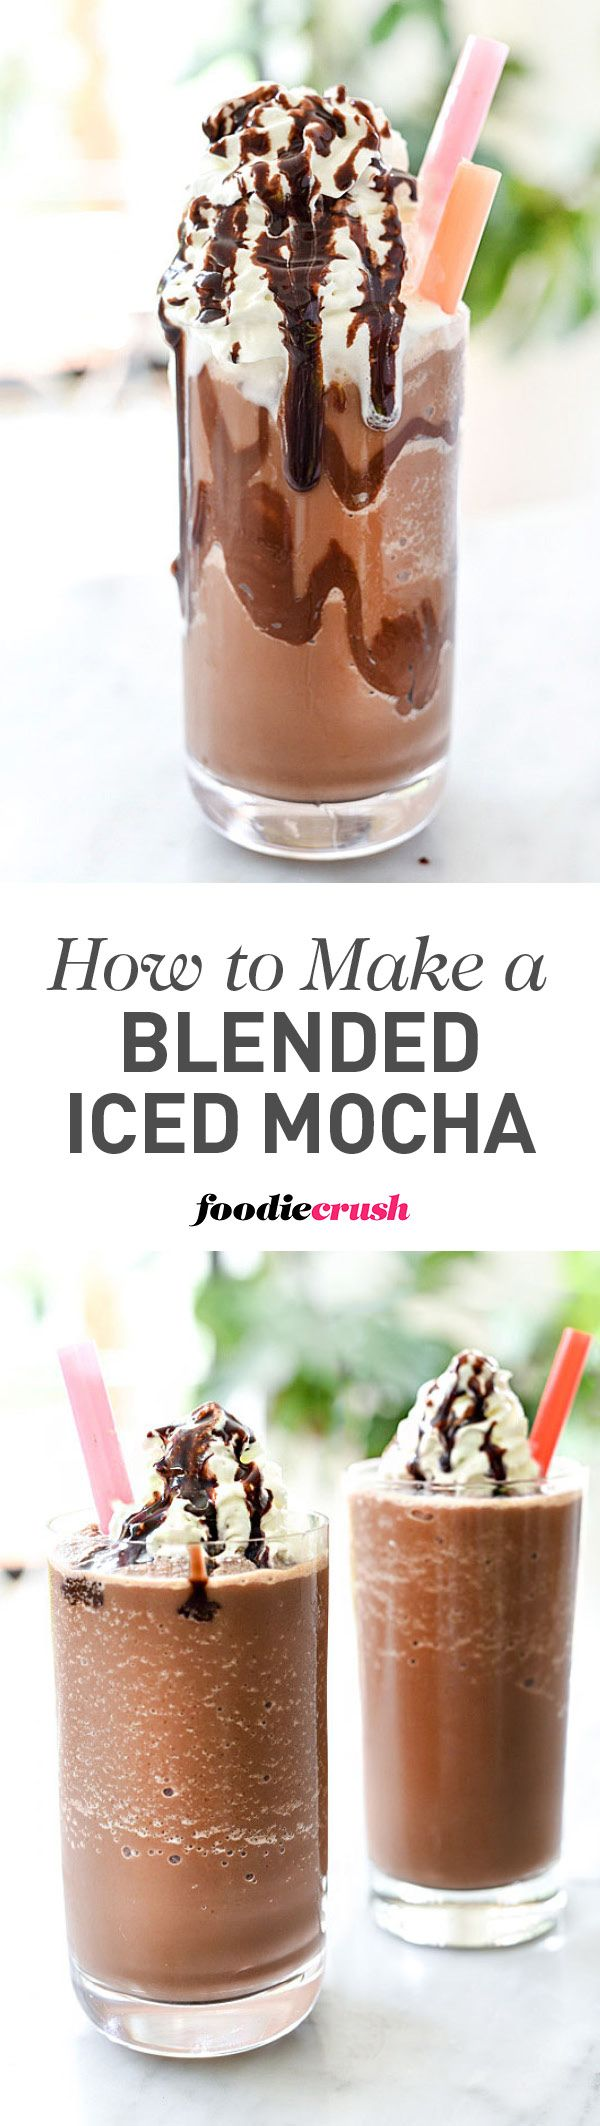 Best 20+ Iced mocha recipe ideas on Pinterest | Iced coffee drinks ...